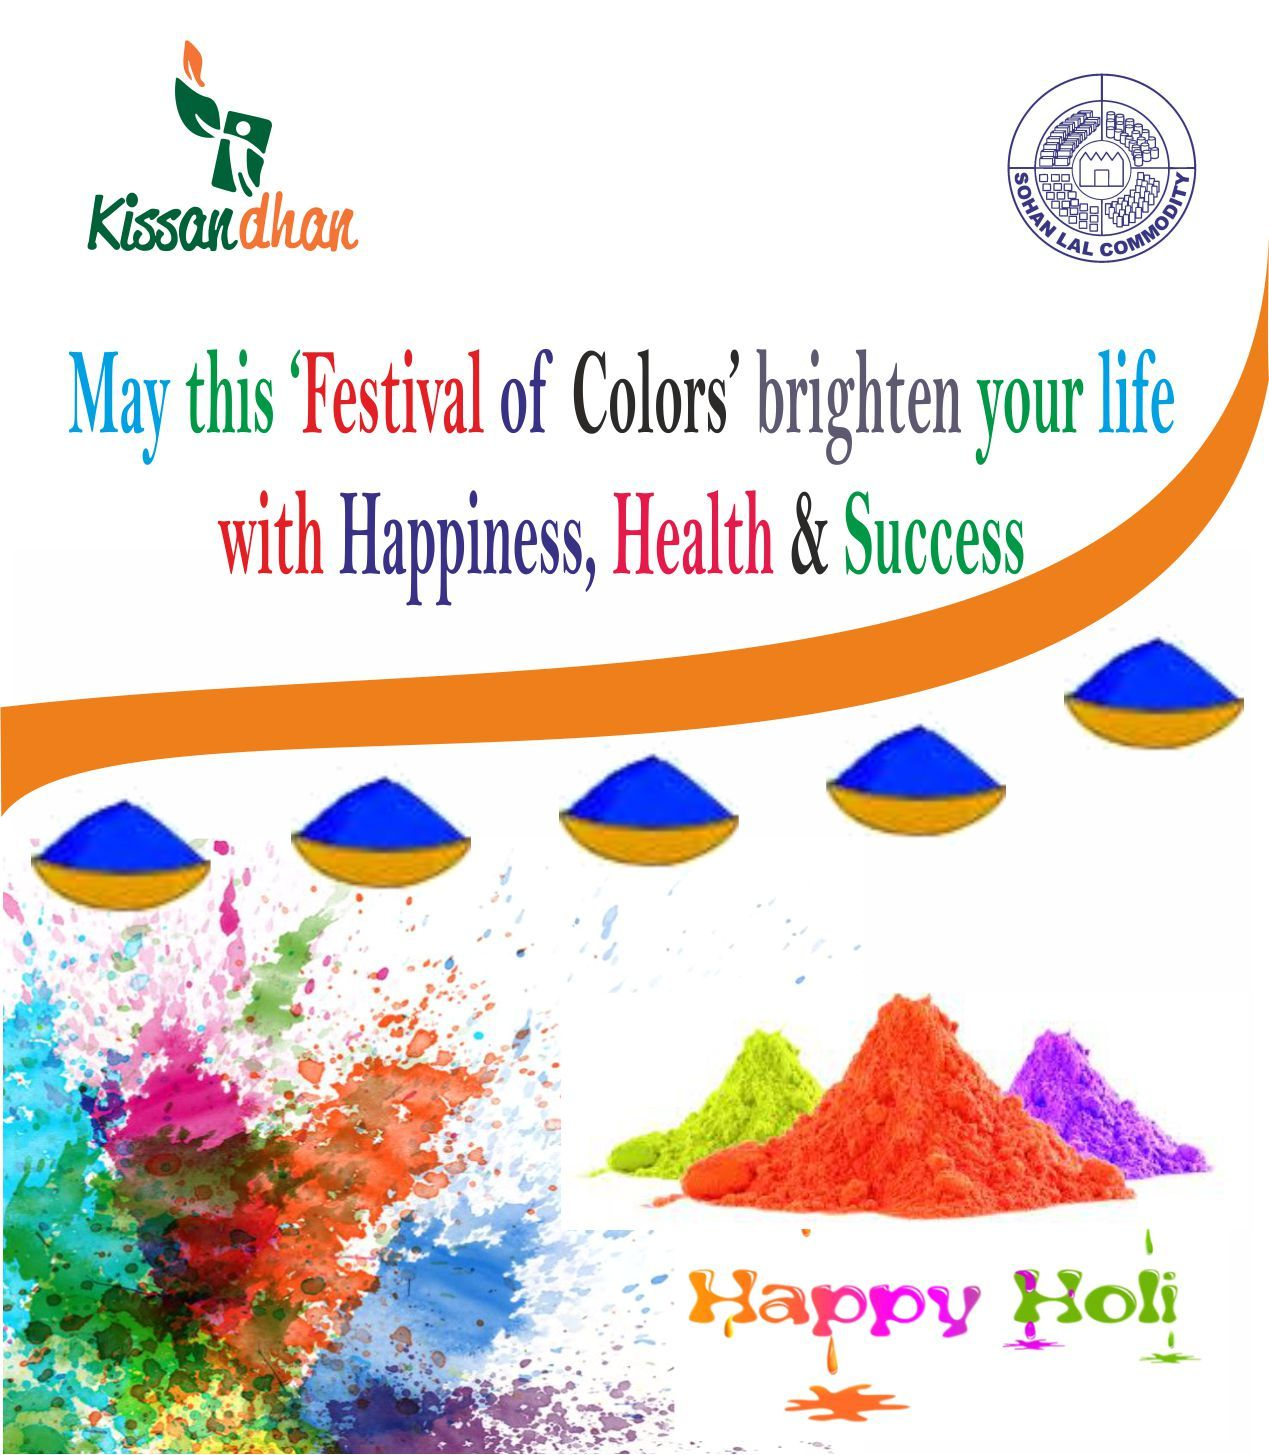 Slcm wishes you a very happy holi festival greetings pinterest slcm wishes you a very happy holi kristyandbryce Image collections